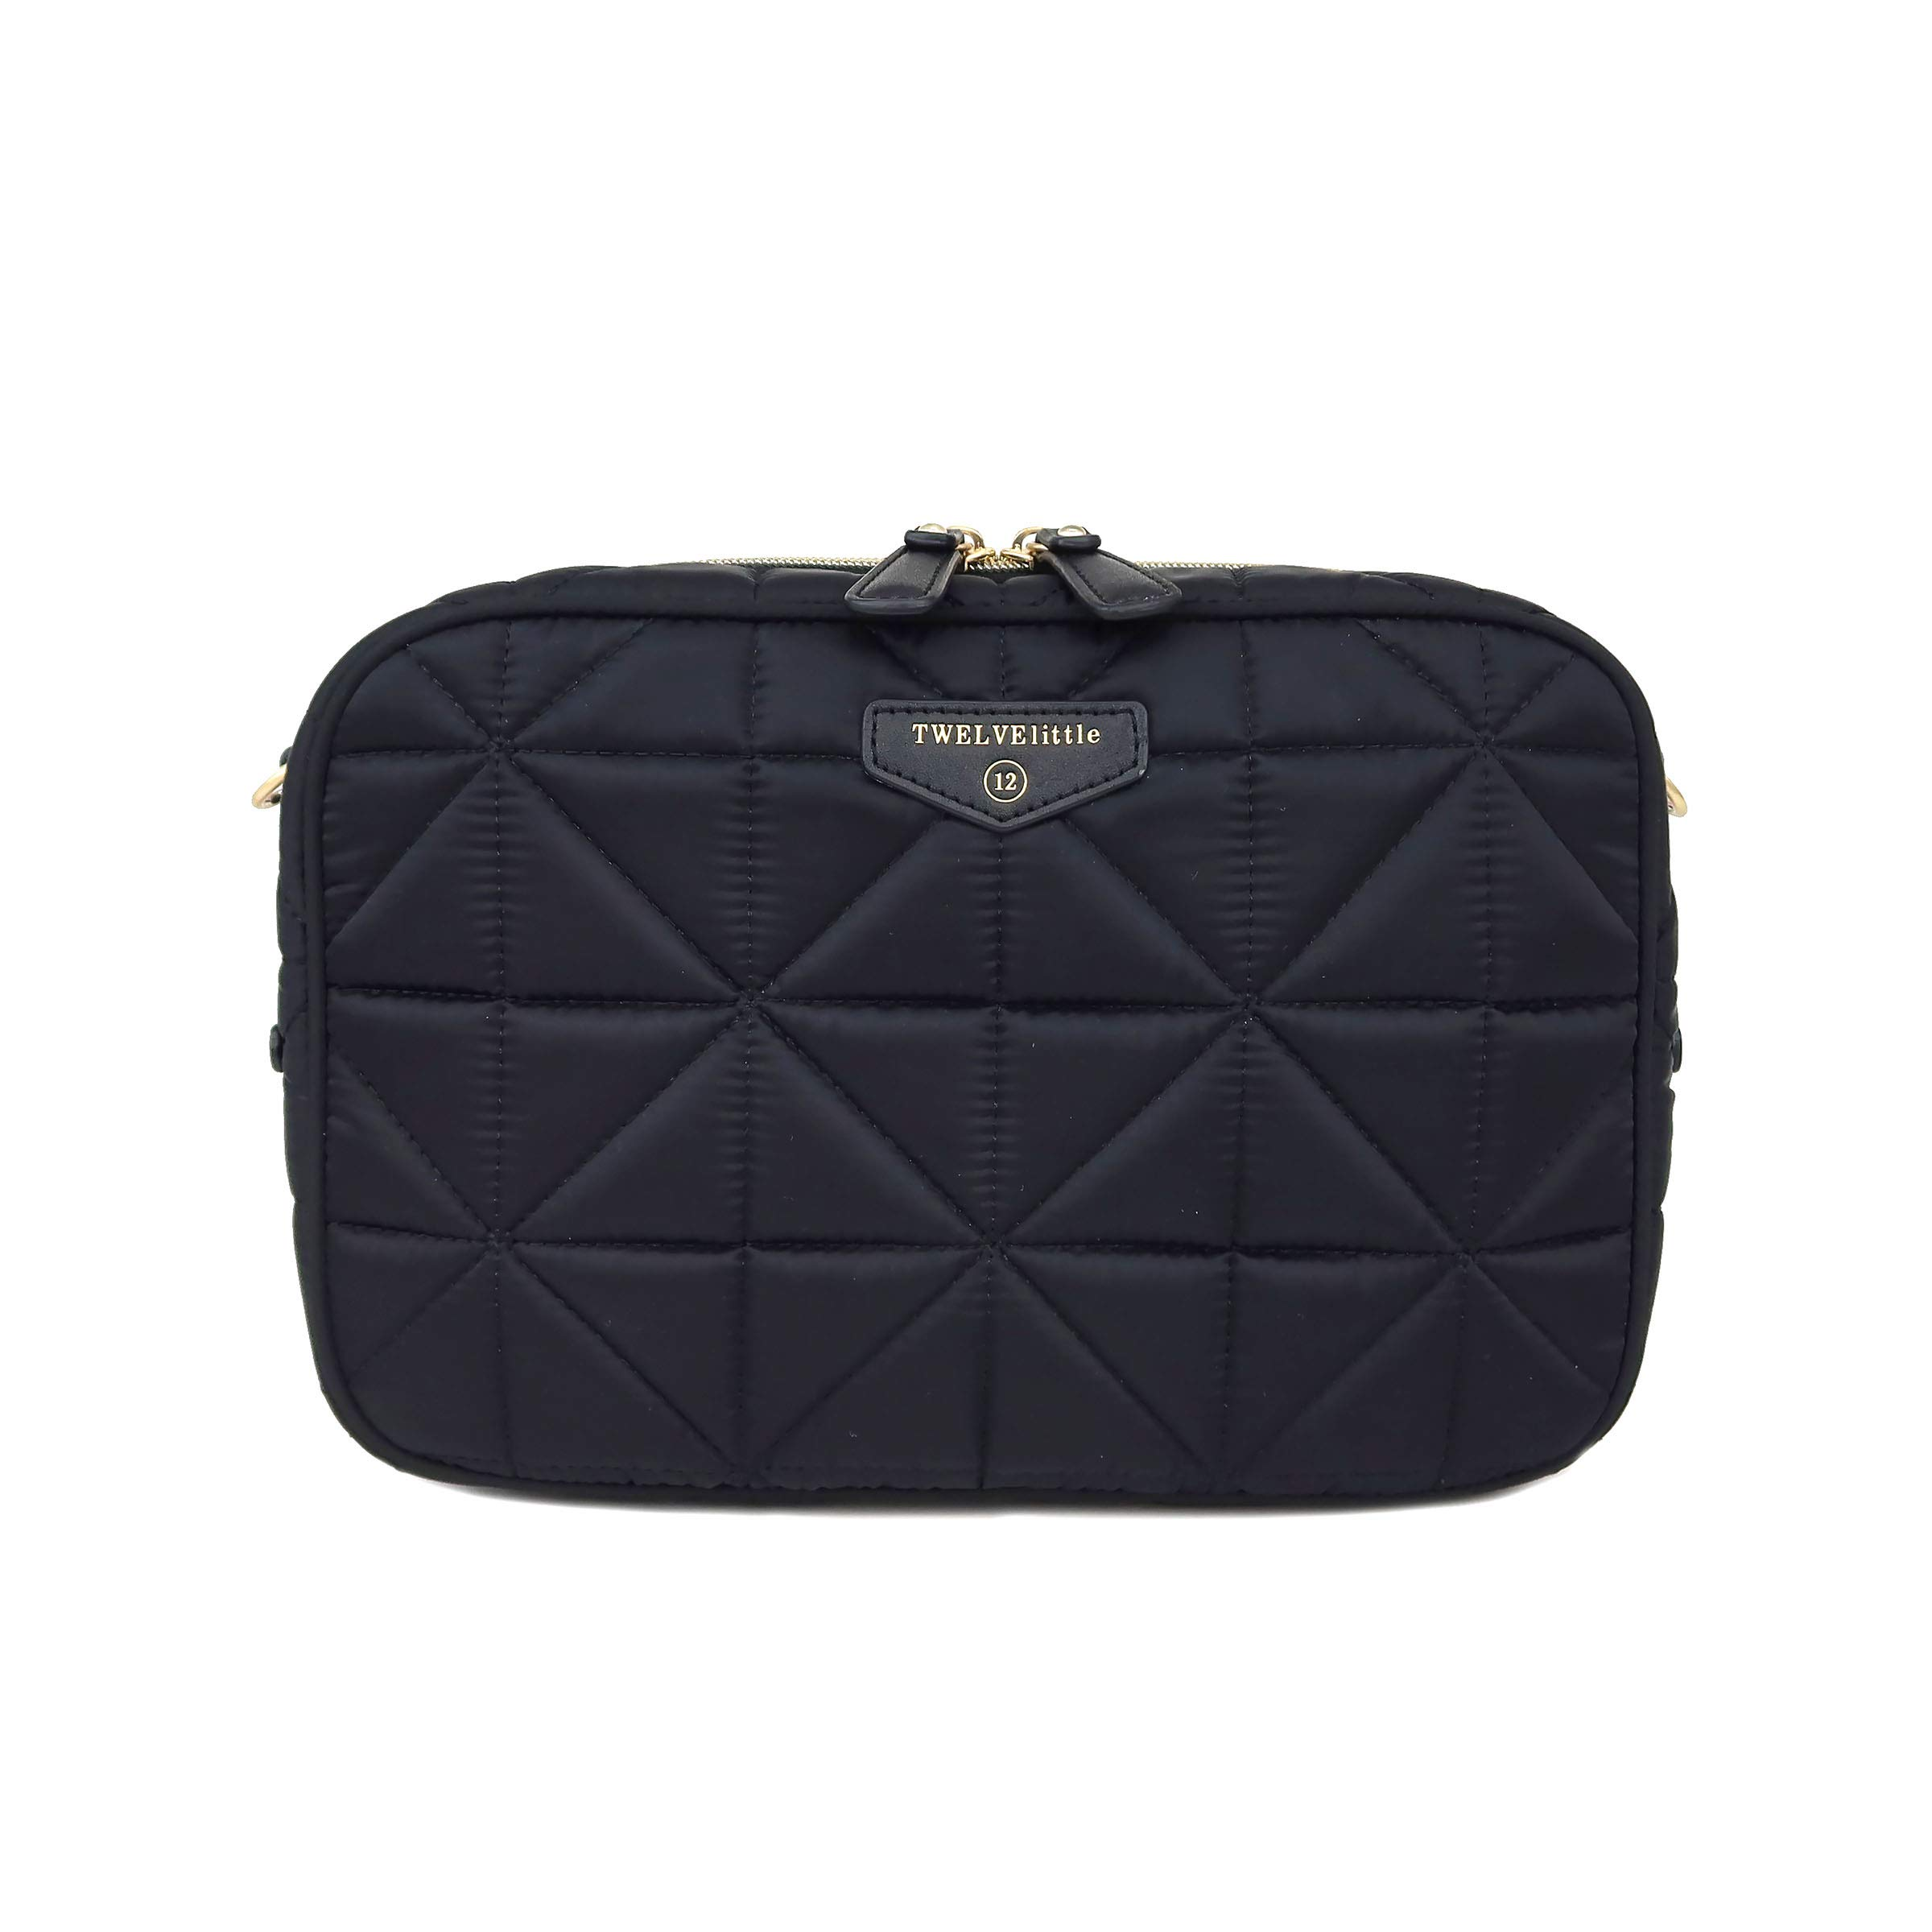 TWELVElittle Diaper Clutch 3.0 (Black - New) - Fashion Diaper Bag for Moms and Dads, Worn As Clutch or Crossover Bag with Compartments for Diapers, Wipes and Changing Pad